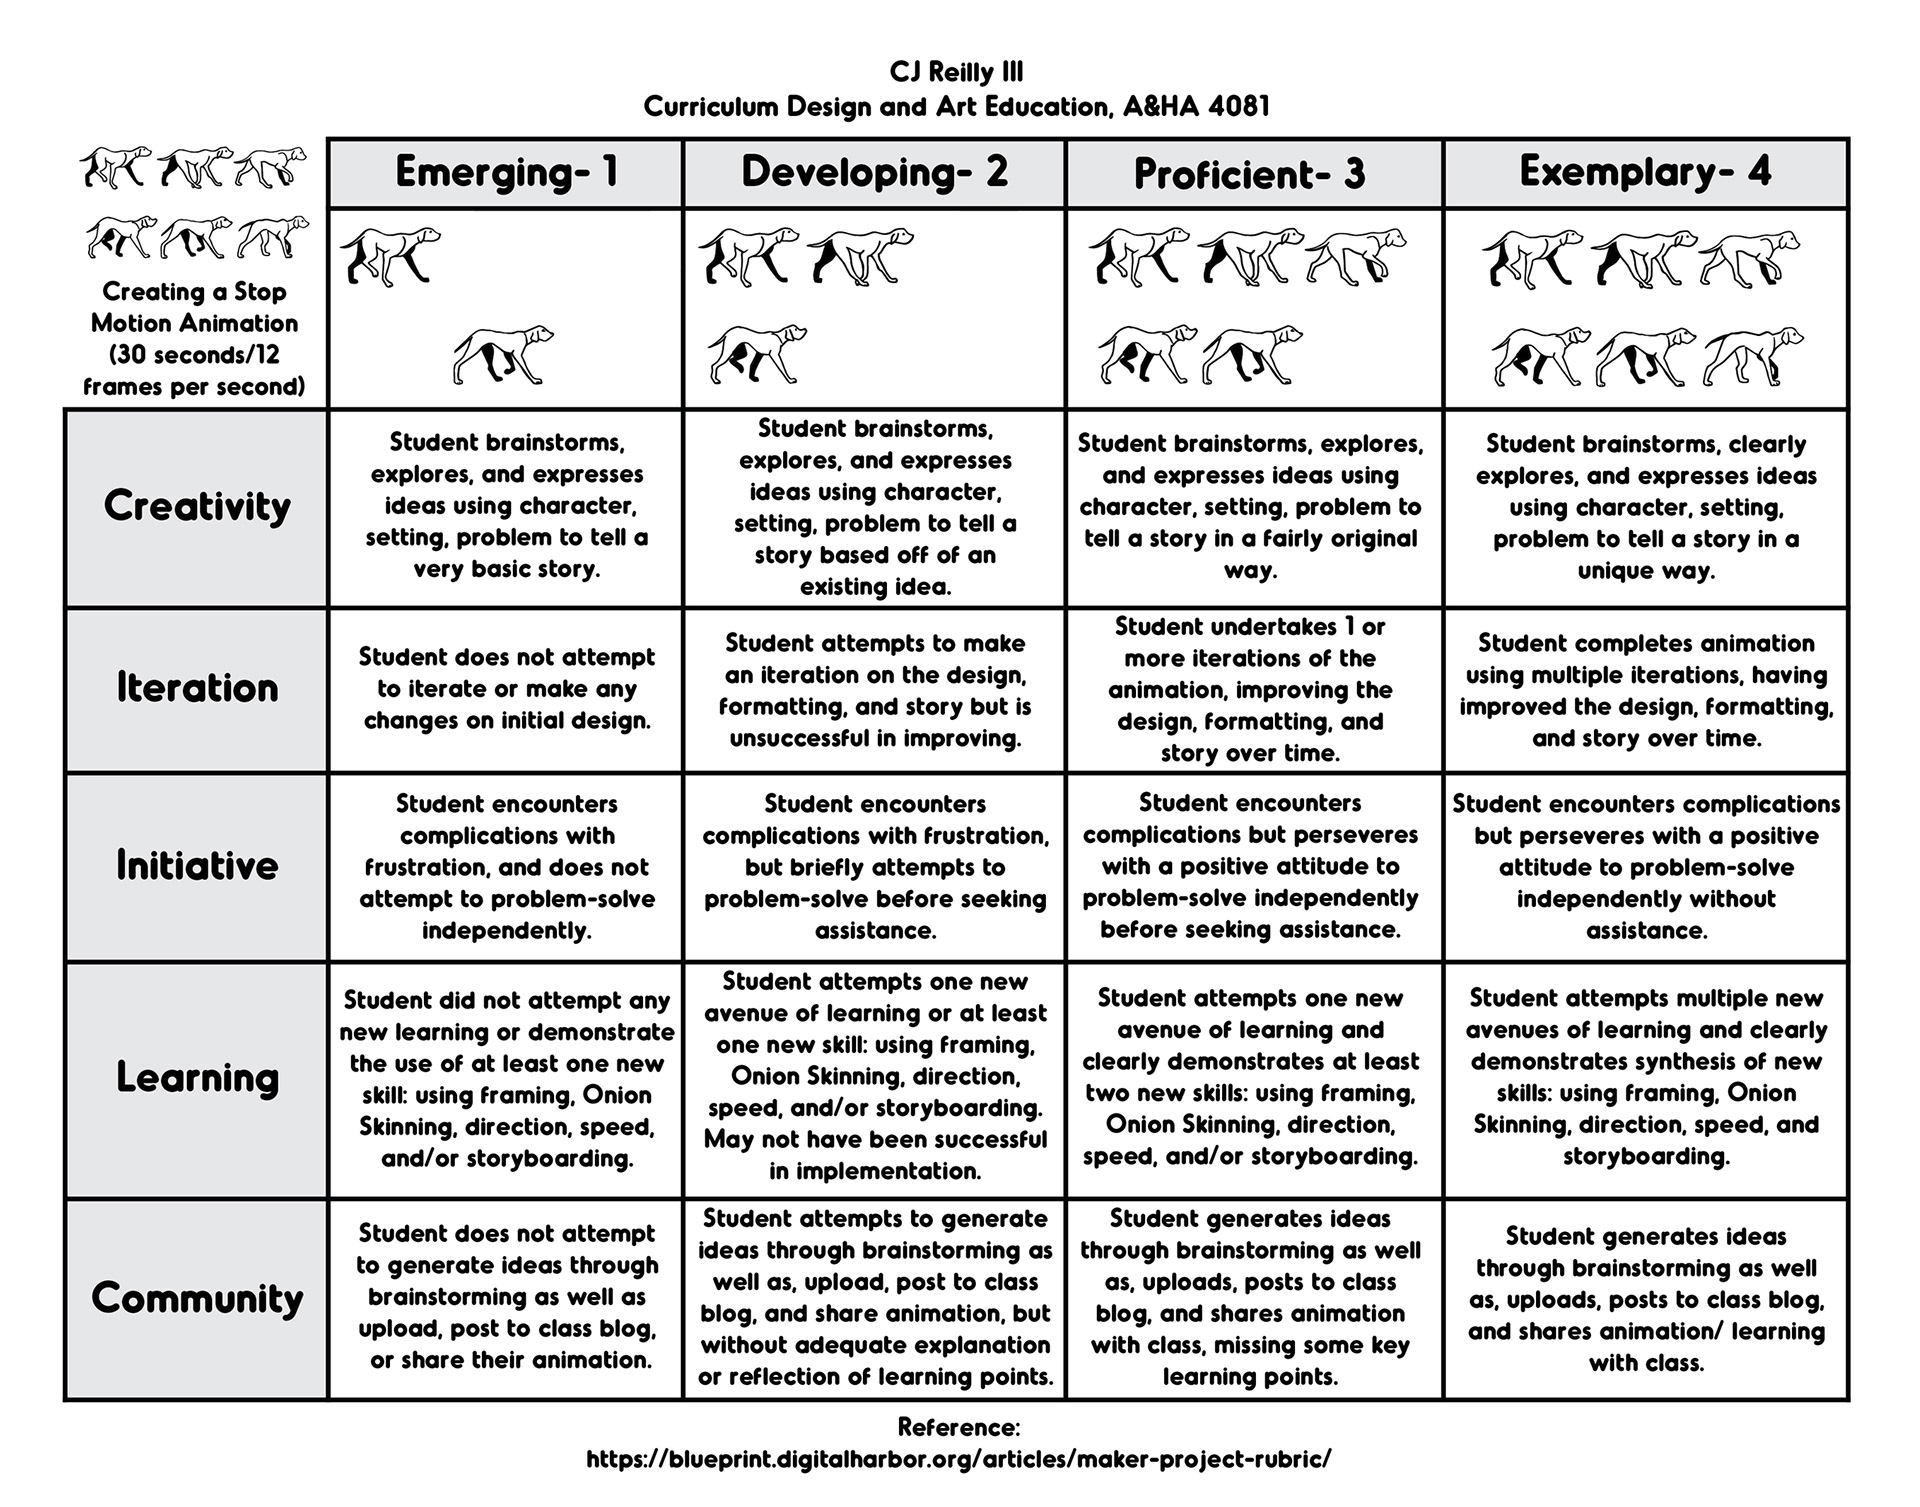 Character Design Rubric : Cj reilly iii curriculum design in art education rubric